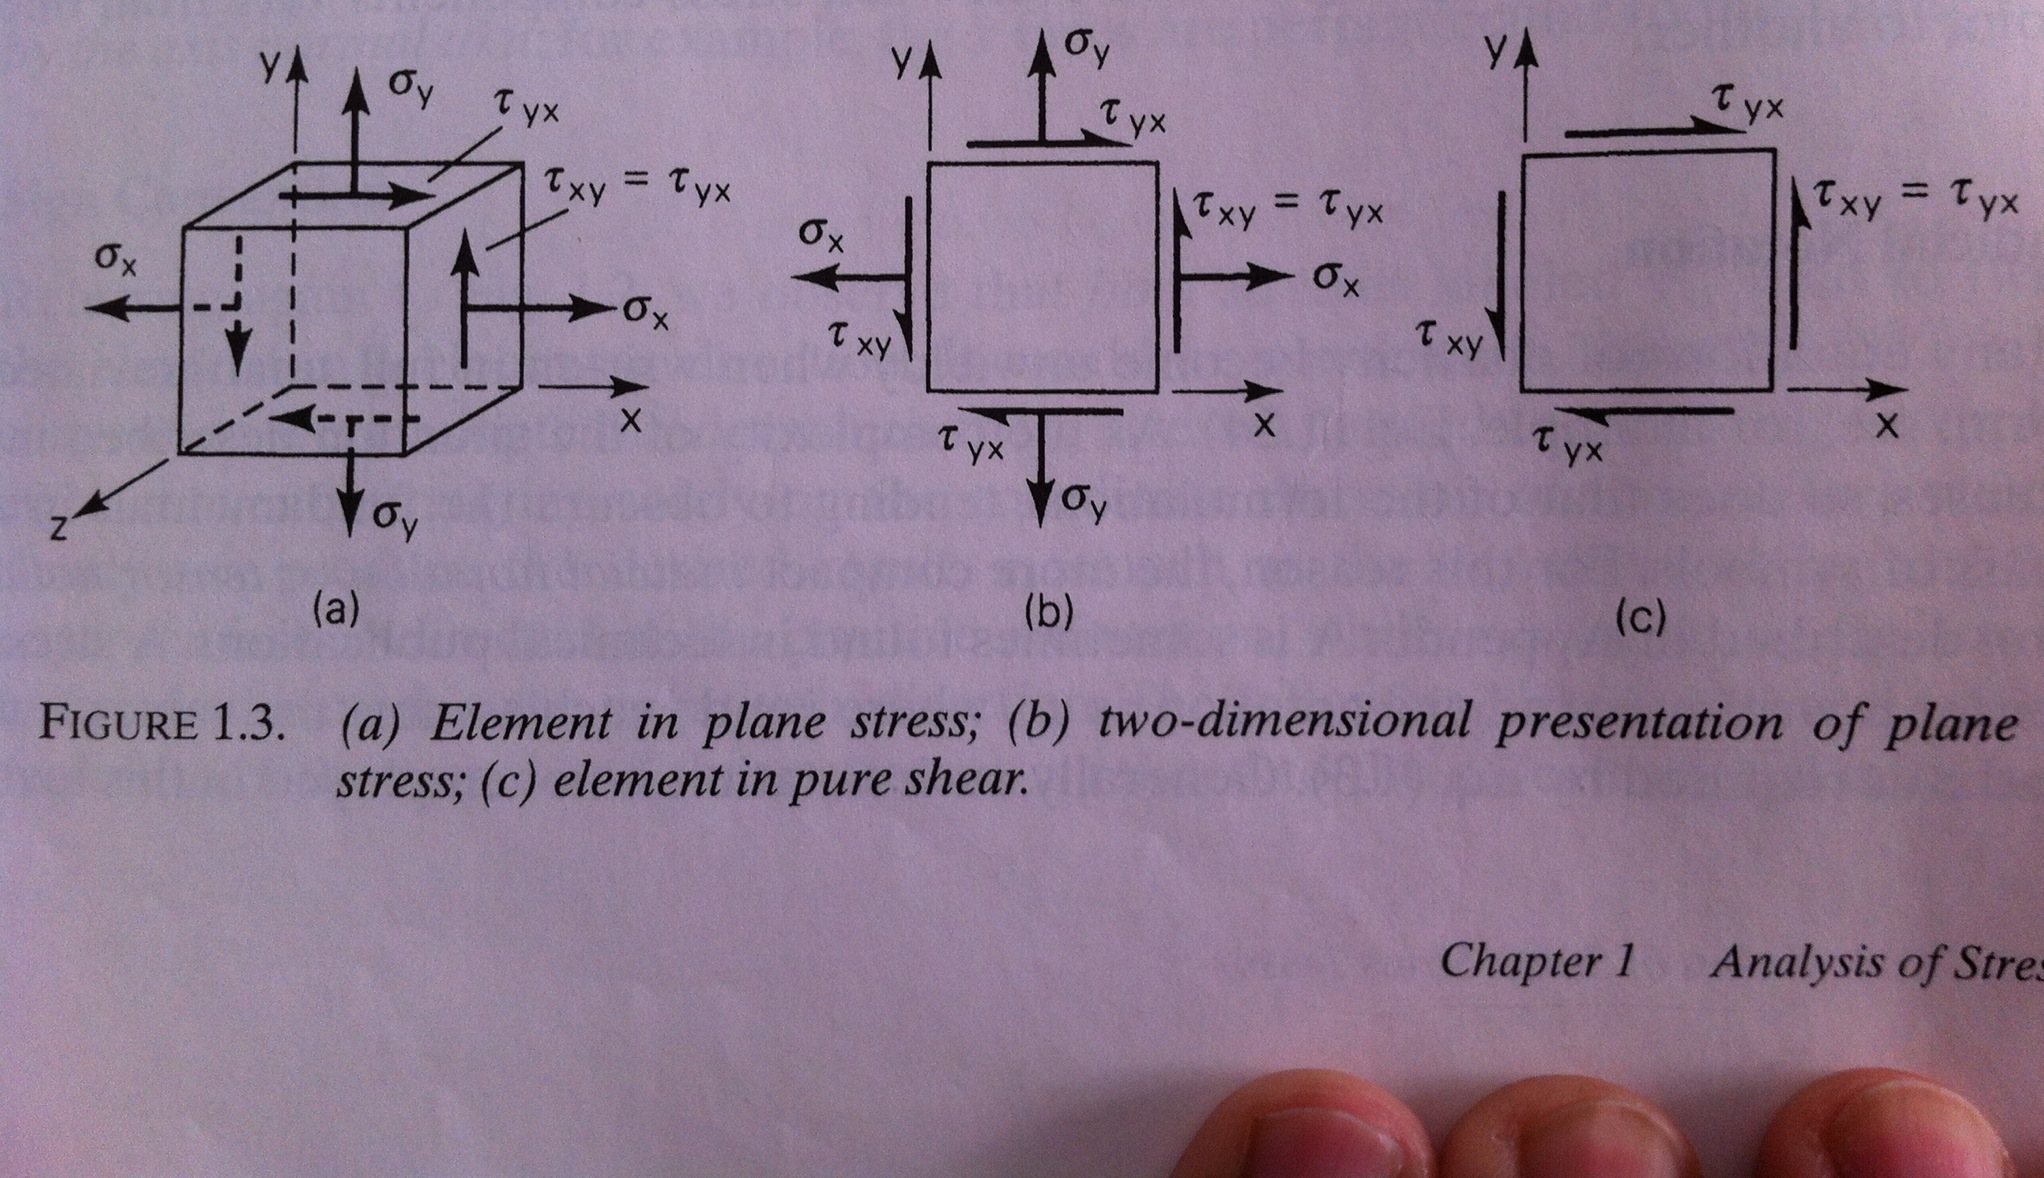 An element in plane stress (Fig. 1.3b) is subjecte